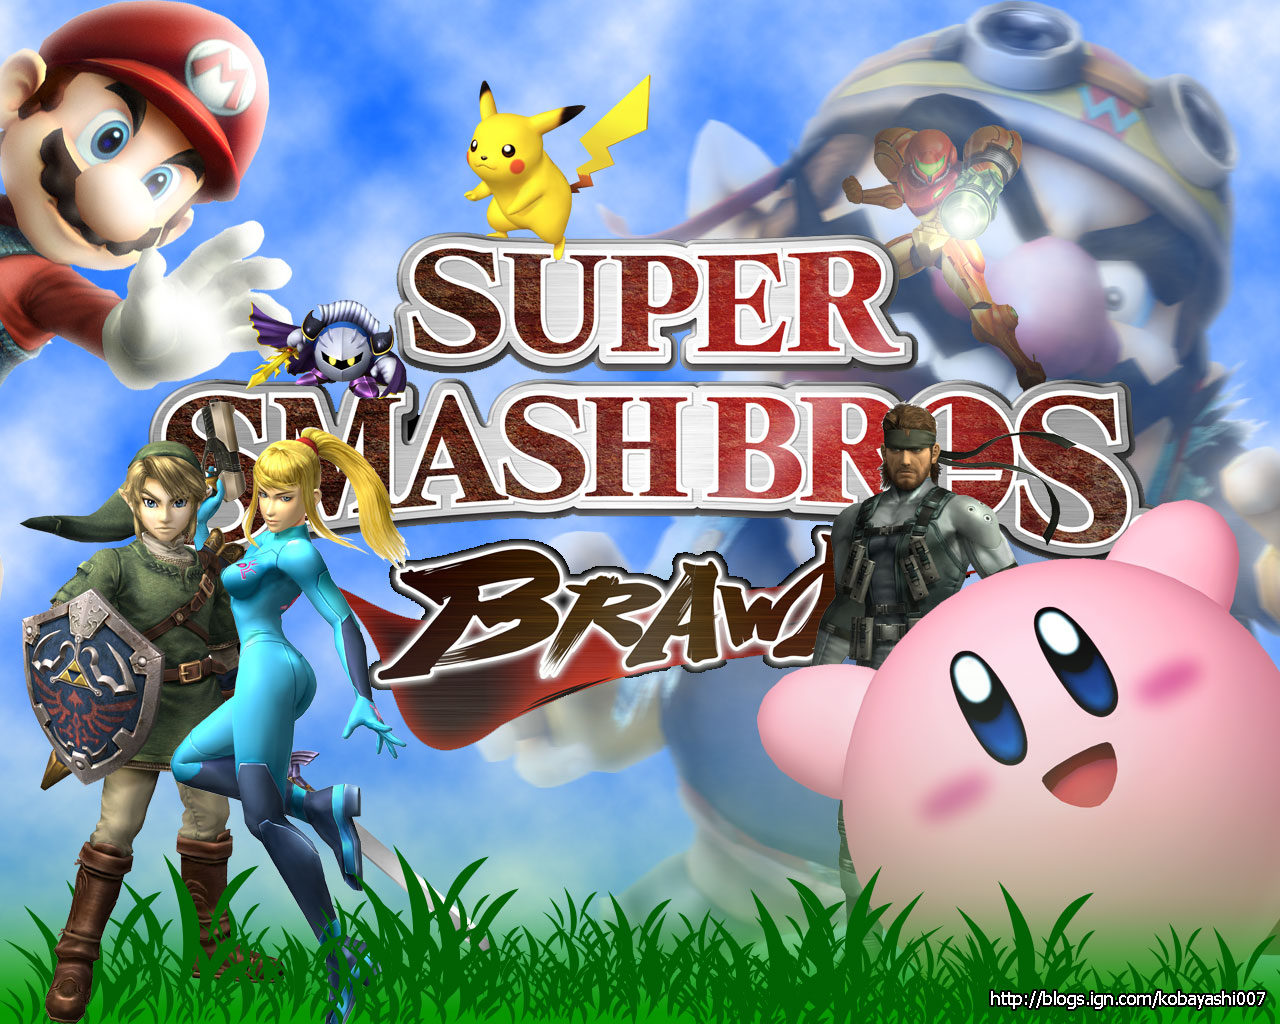 Super_smash_bros_brawl_12801